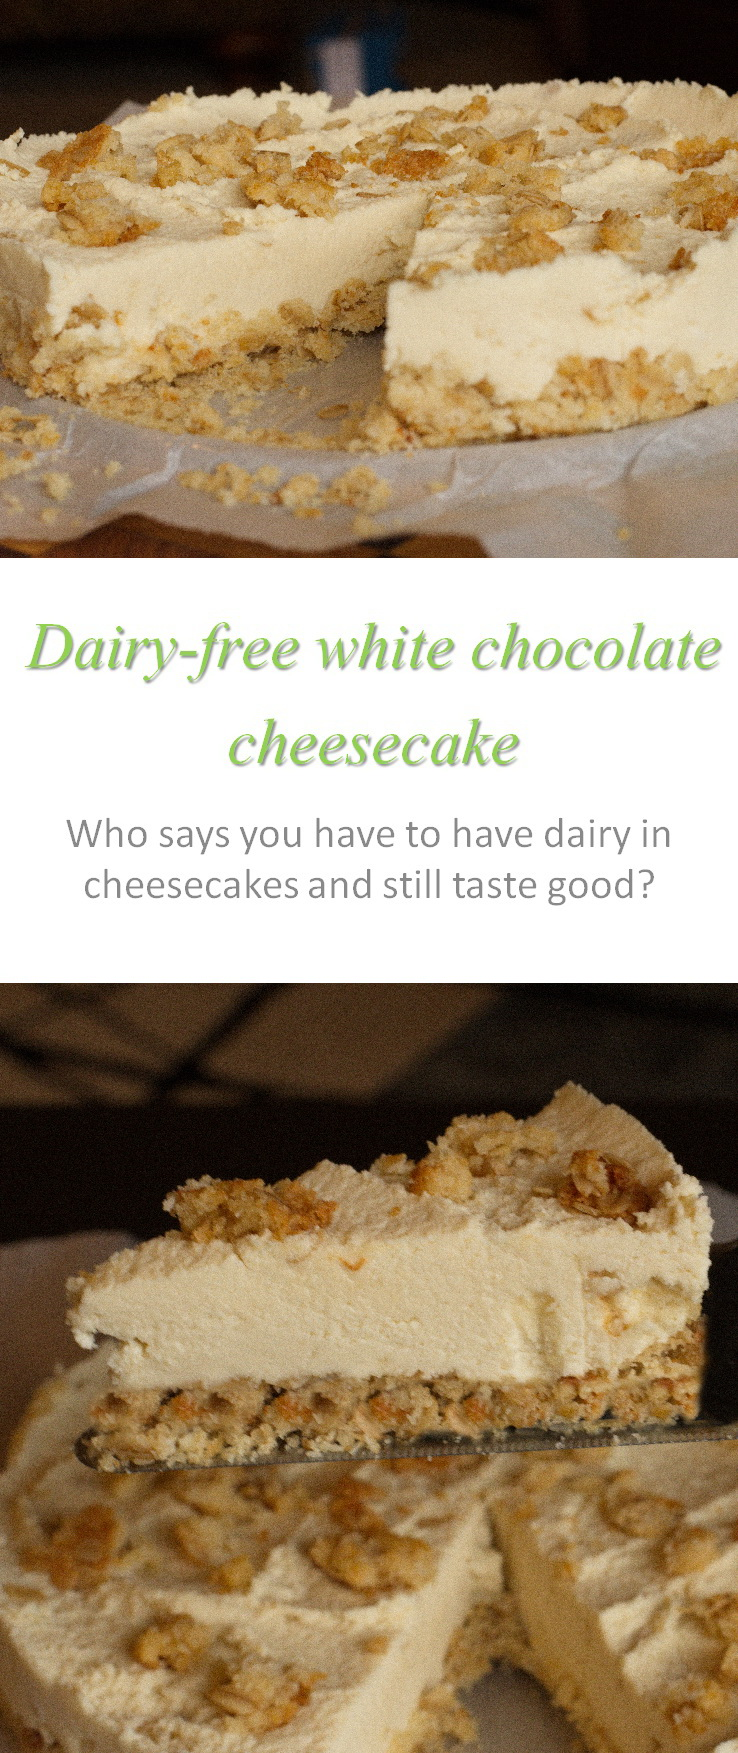 A dairy-free and yummy white chocolate cheesecake - definitely one to try if you can find the ingredients! #cheesecake #cookathome #glutenfree #dairyfree